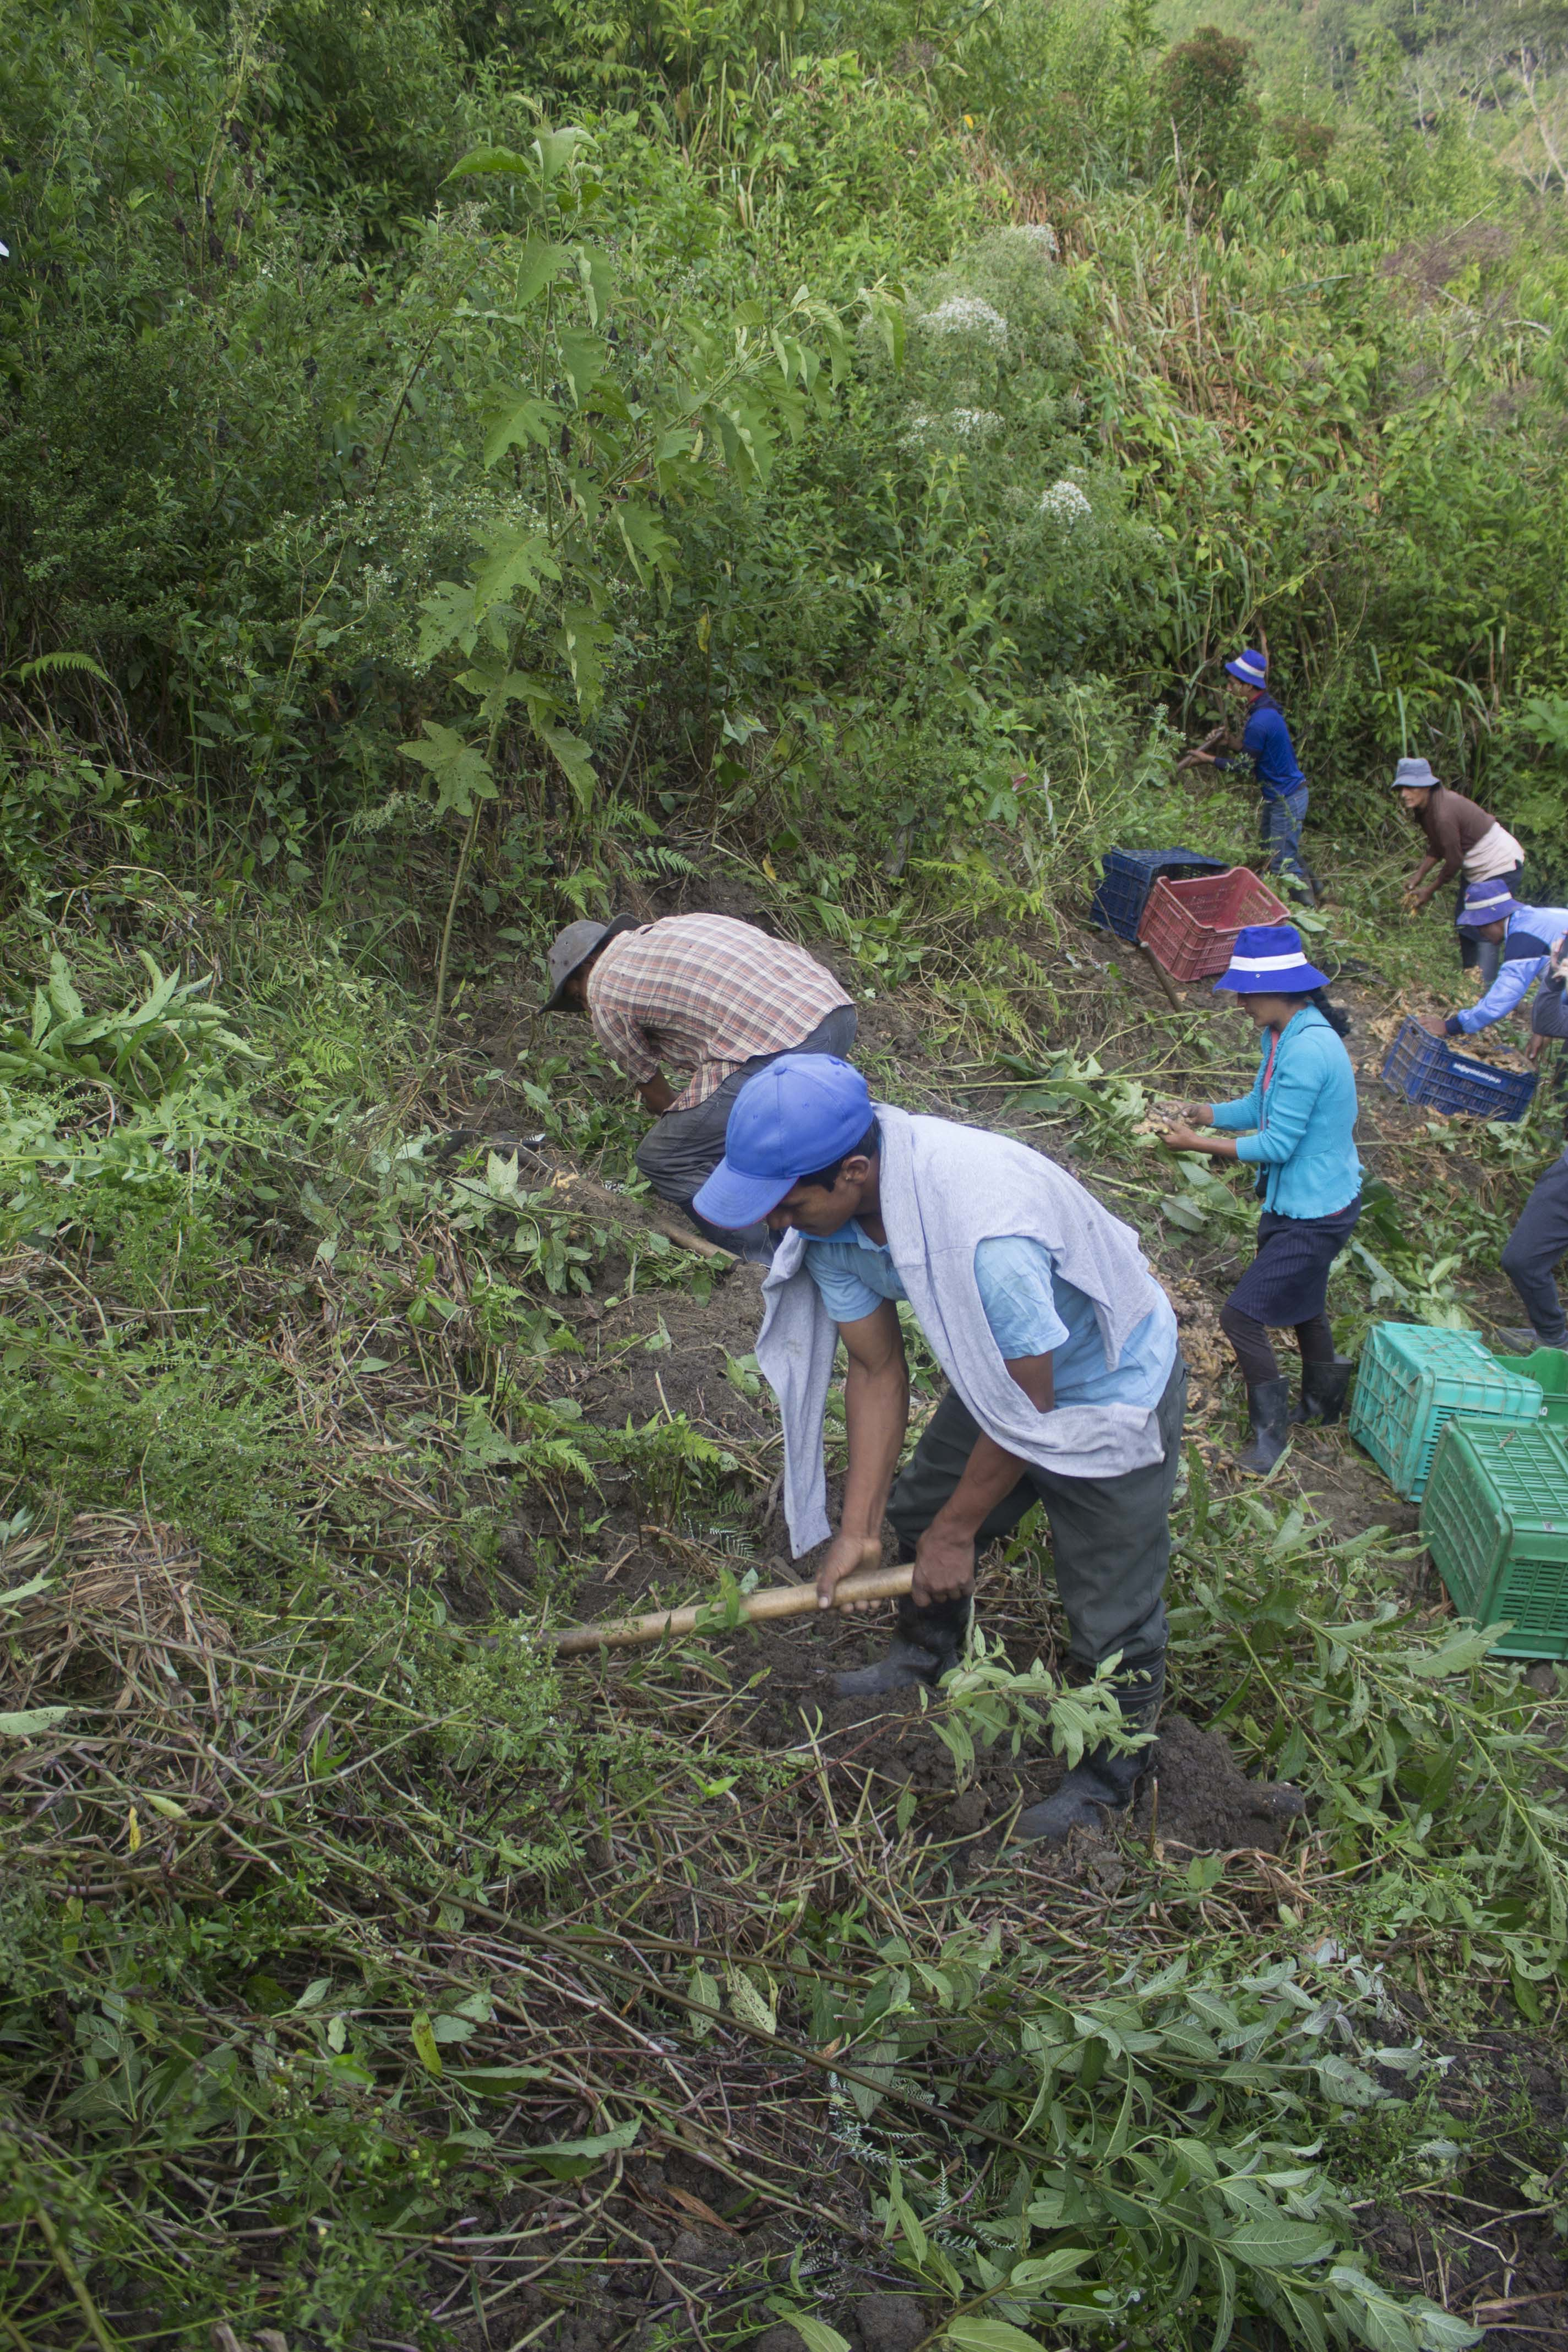 Our farmers with tools harvesting organic ginger on hillside of Peruvian mountains